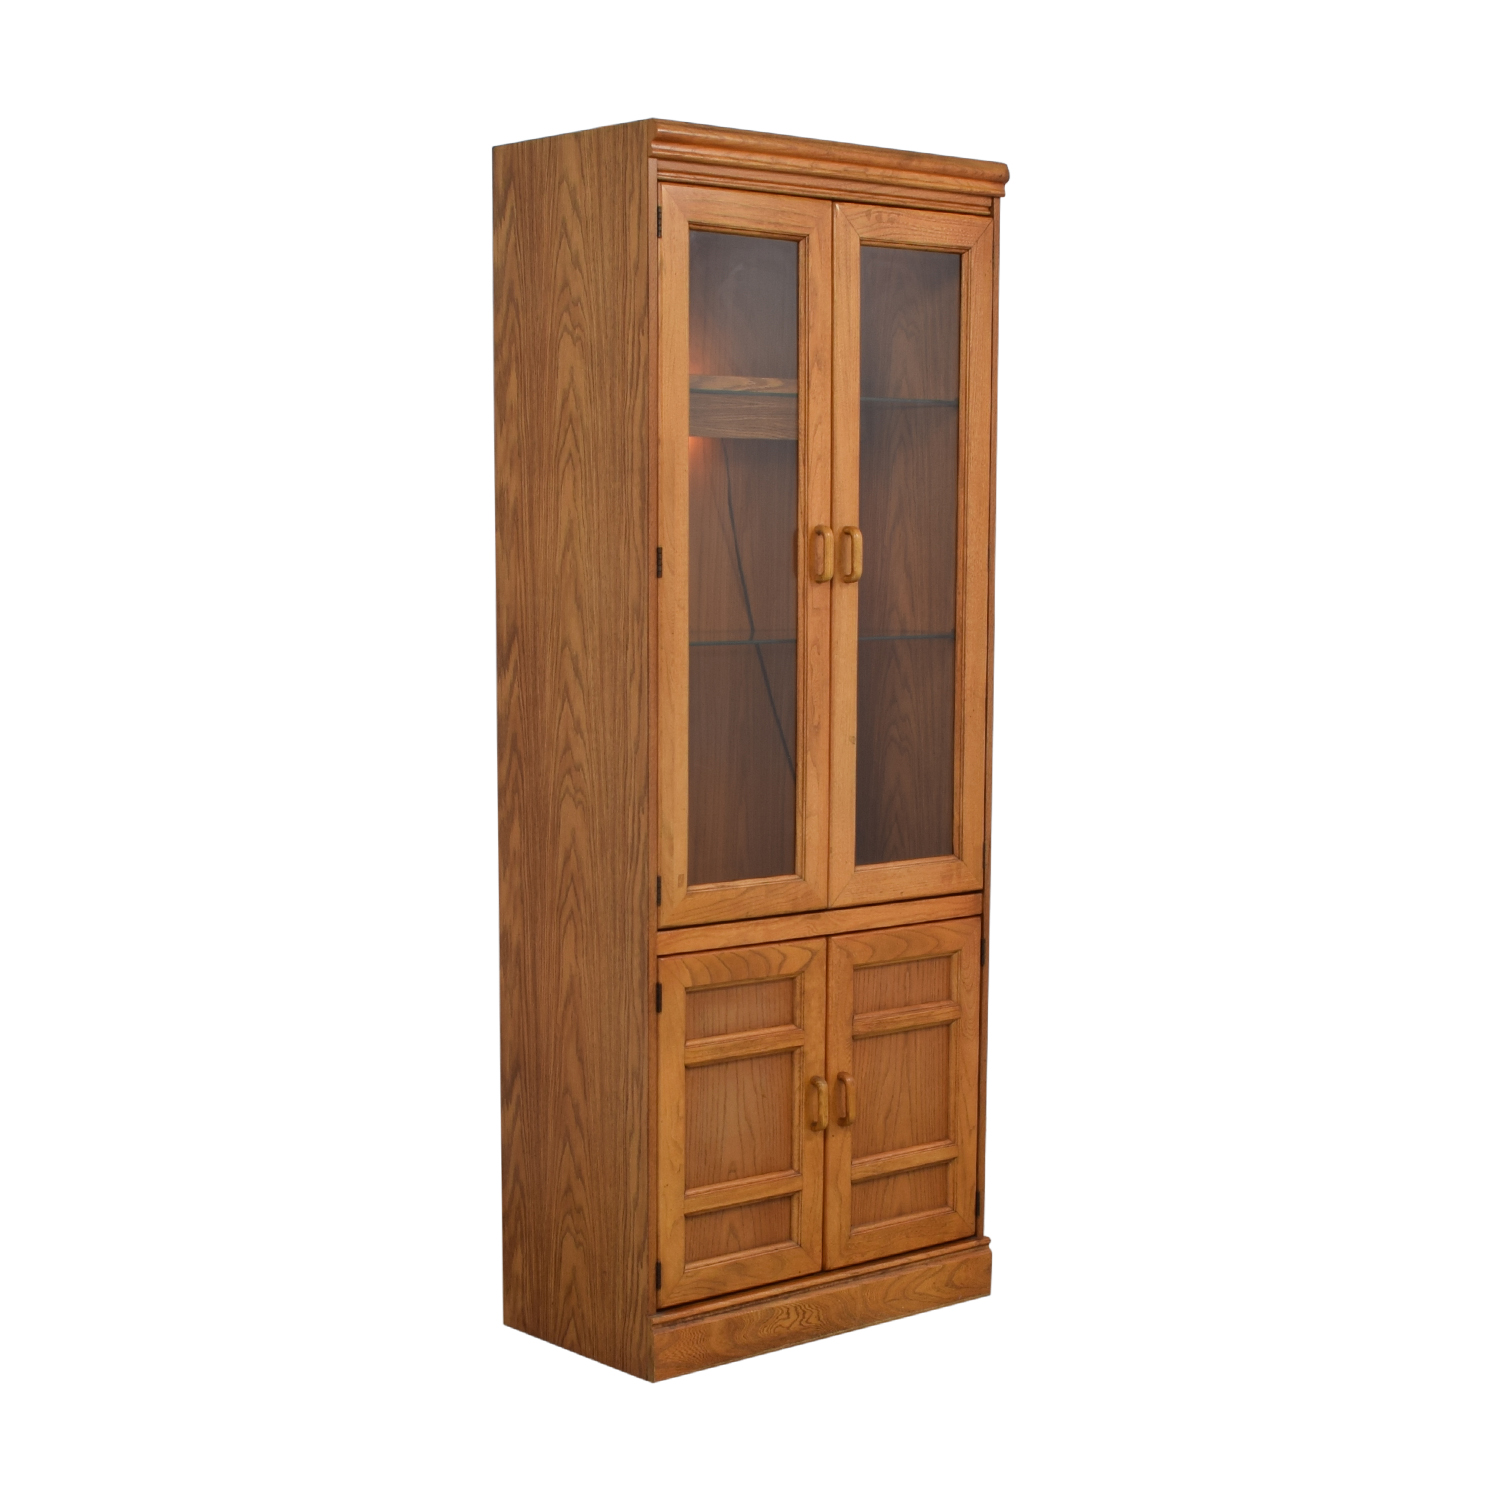 Macy's Wood and Glass China Cabinet second hand